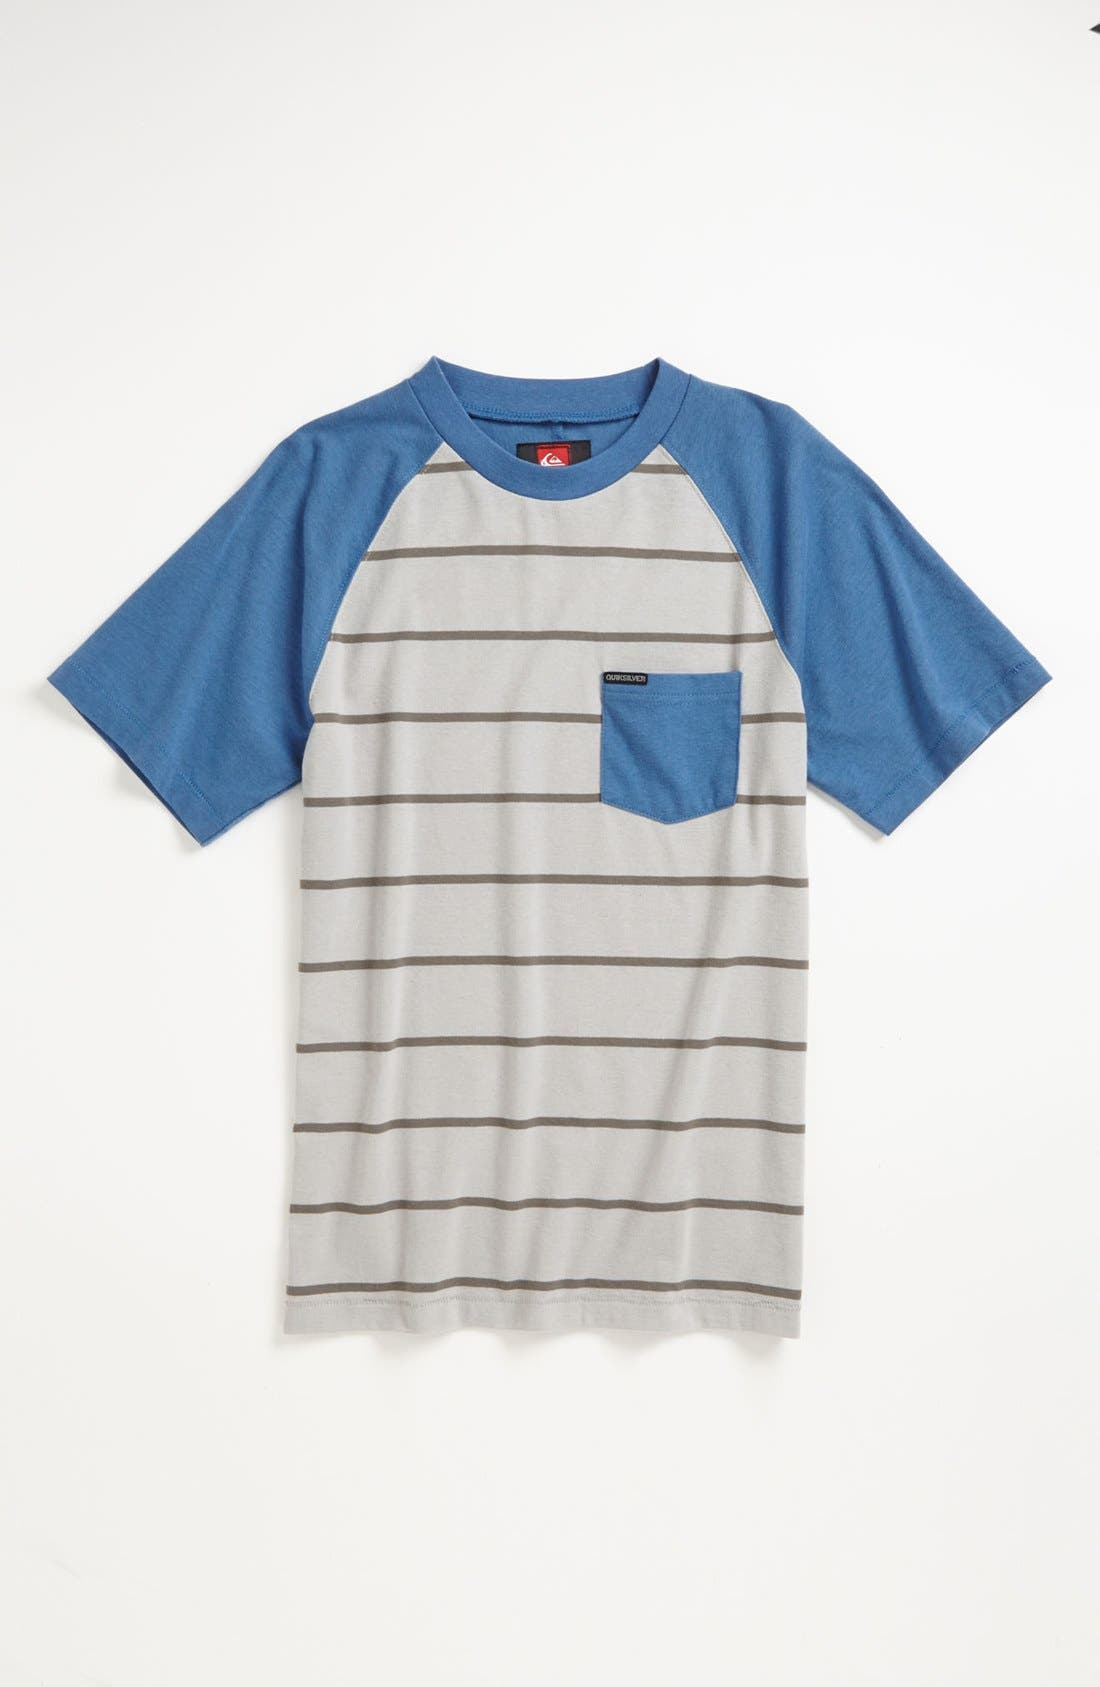 Alternate Image 1 Selected - Quiksilver 'Lennox' T-Shirt (Big Boys)